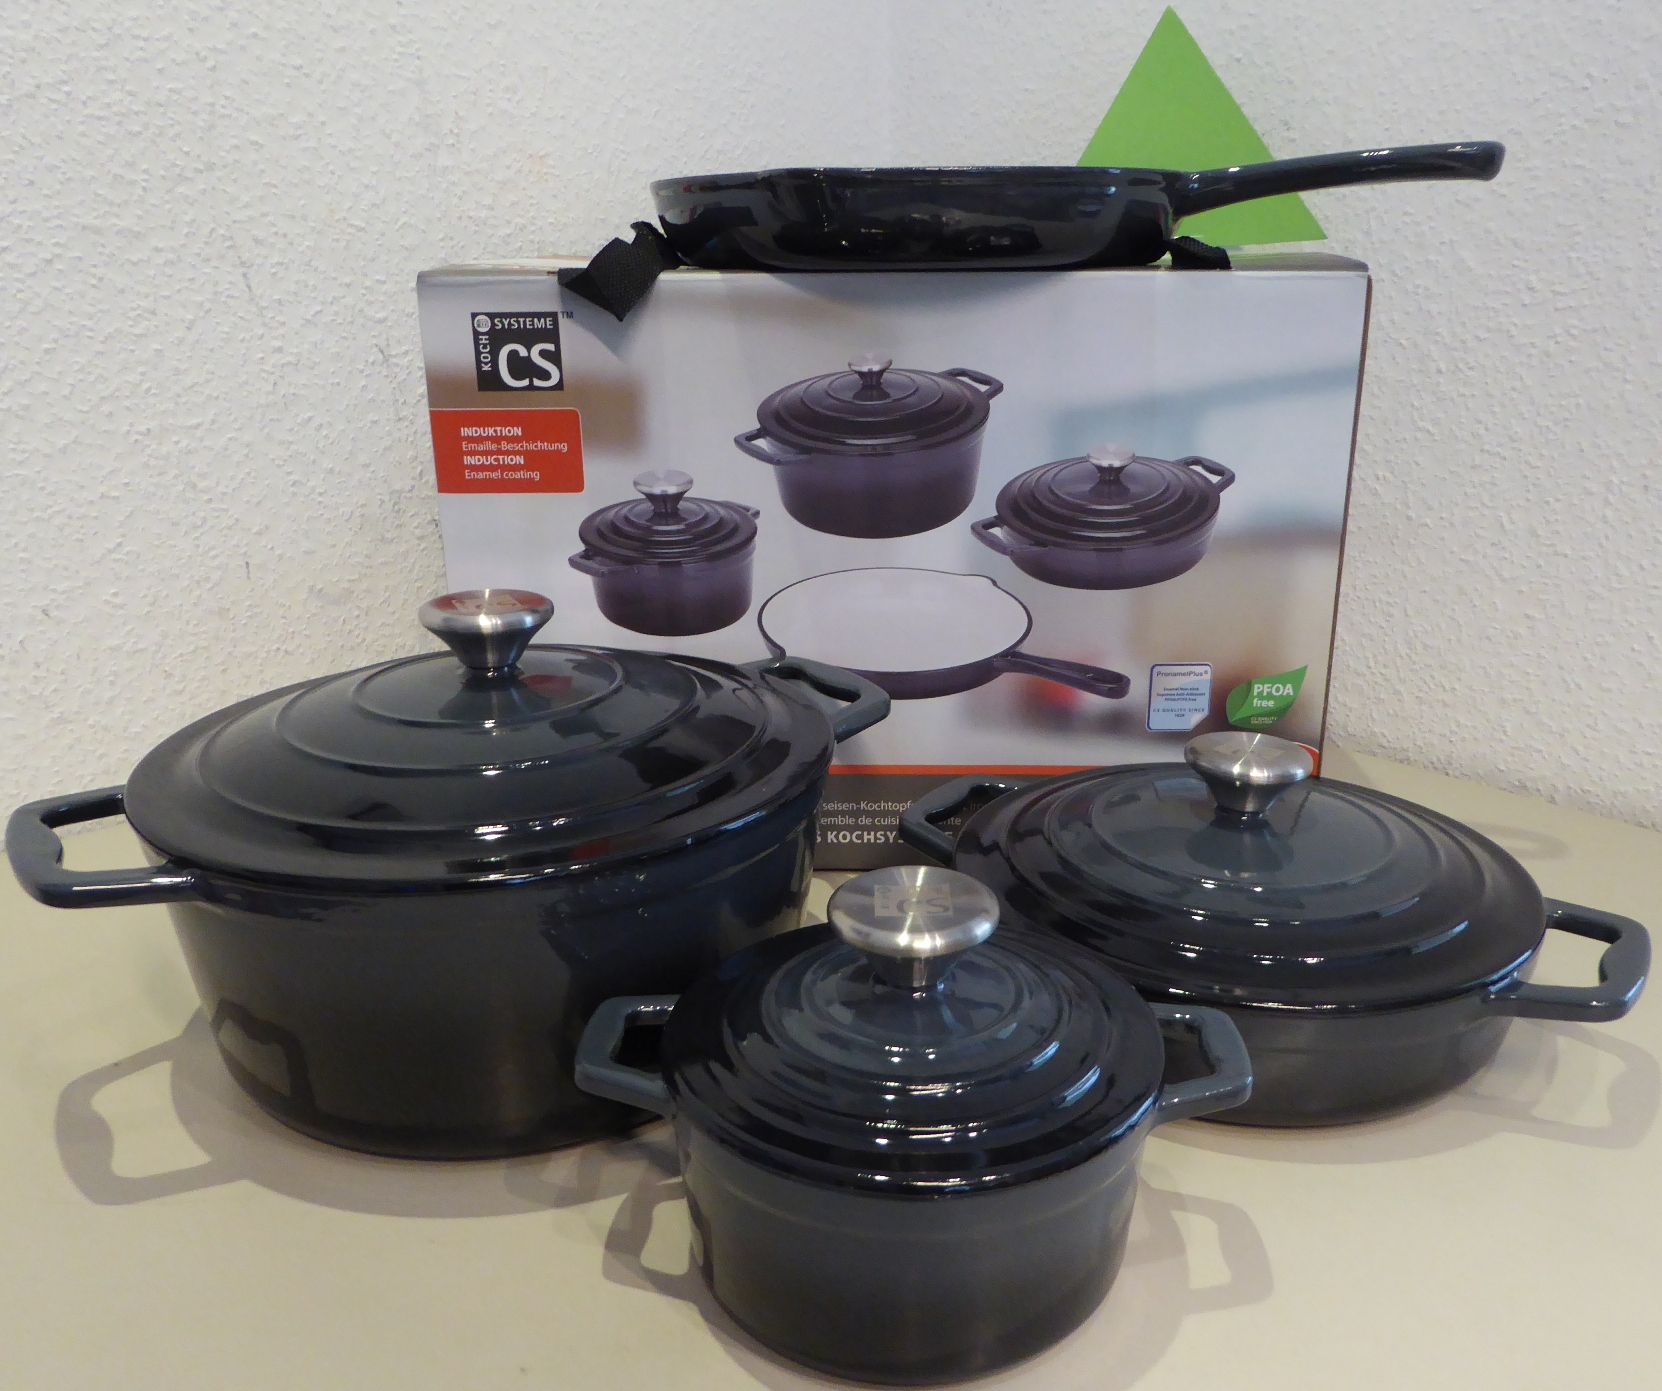 Induktion Topfset Carl Schmidt Cookware Set Cast Iron Xanten Black Grey Induction